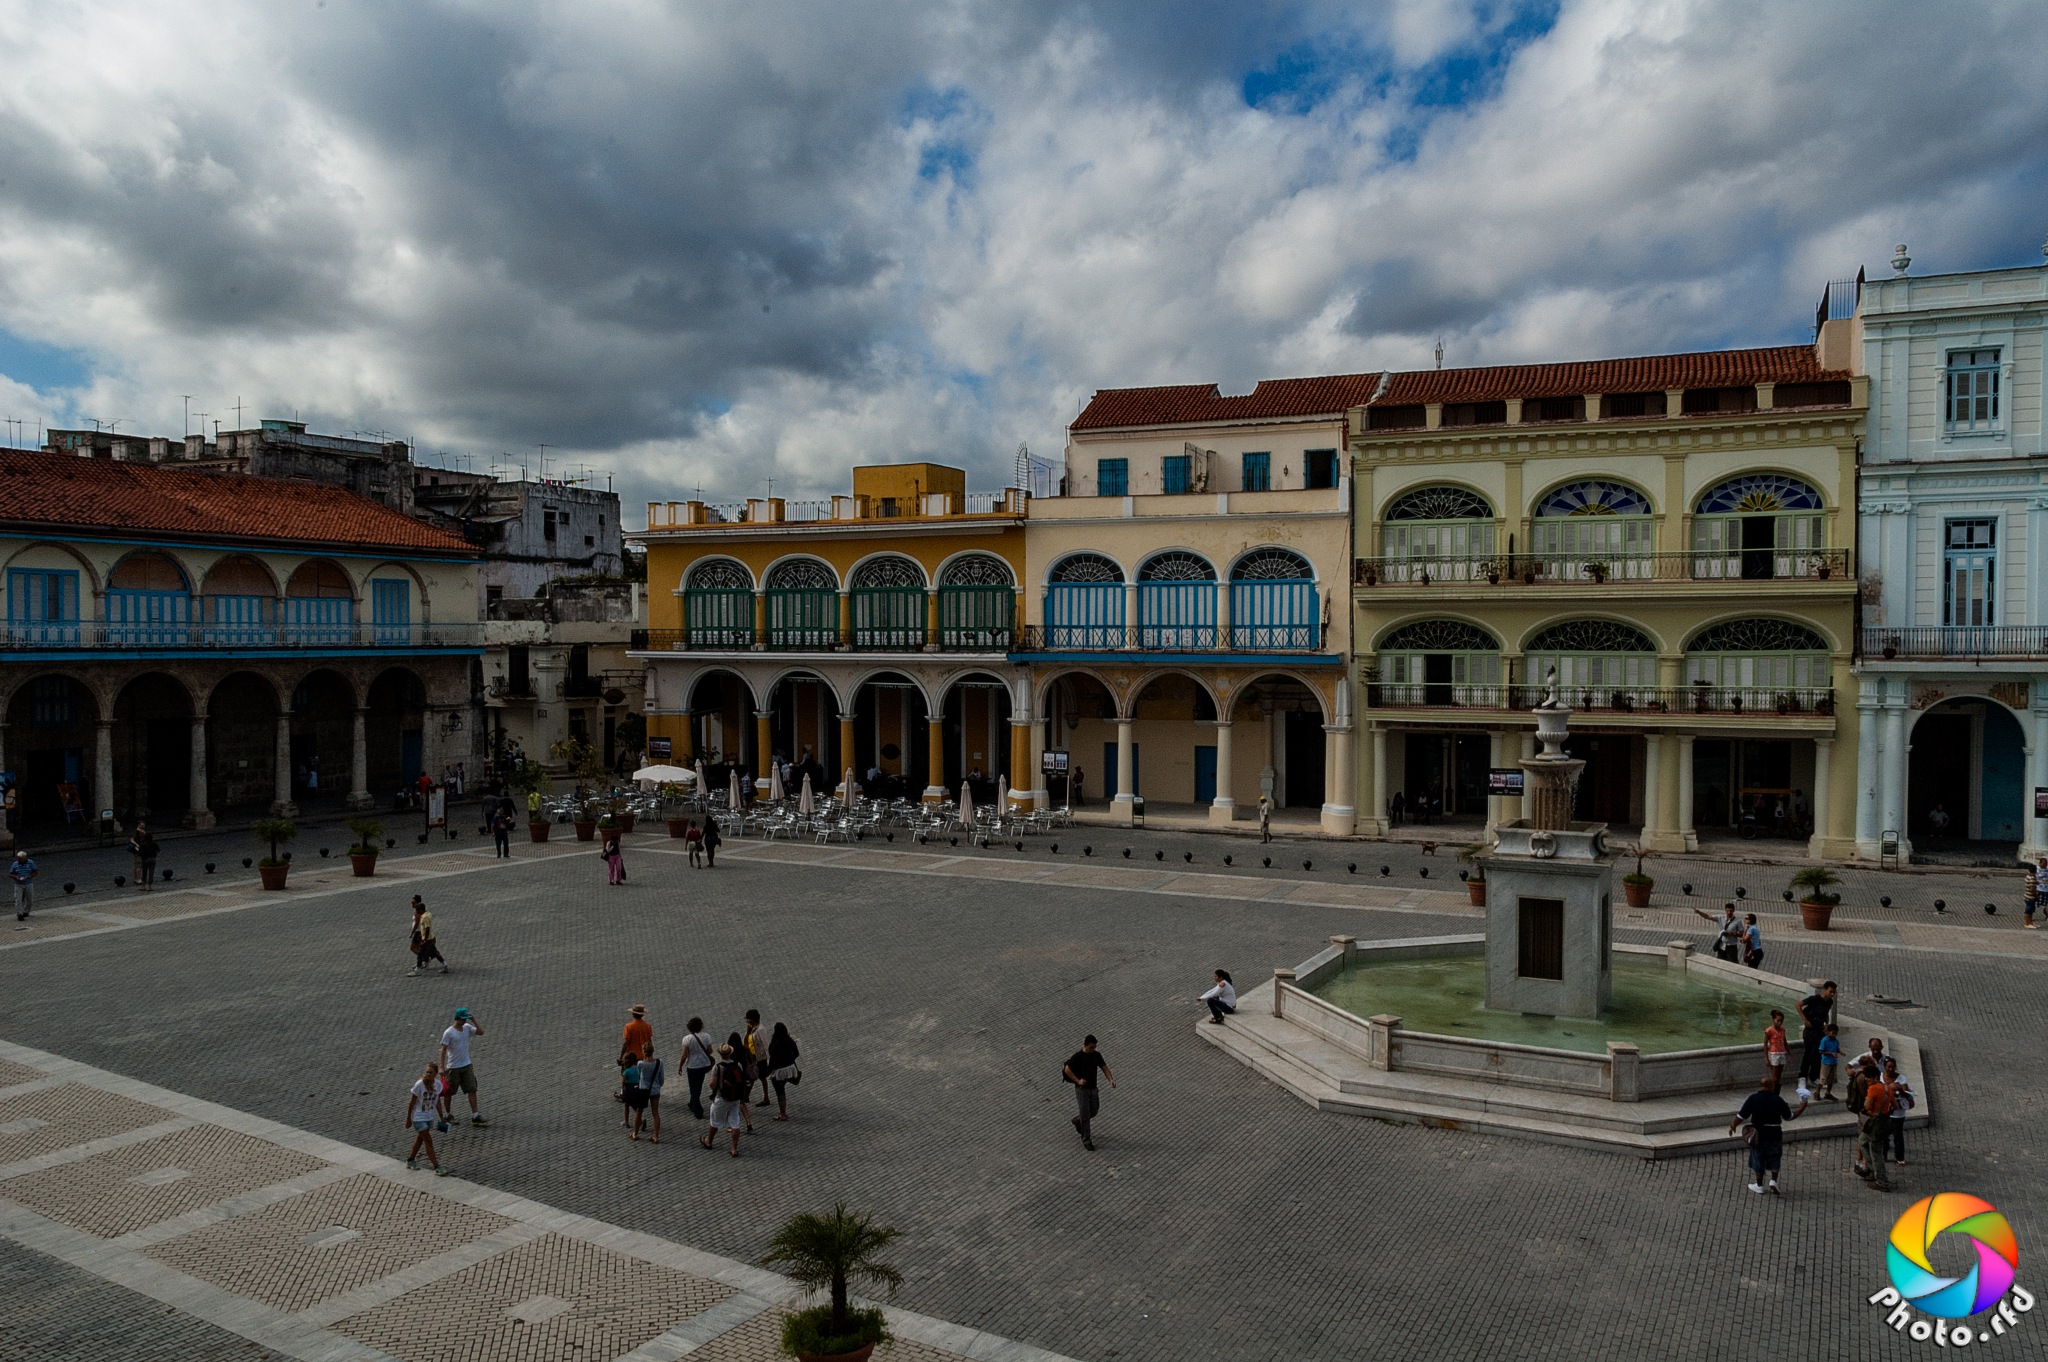 Plaza  by Photo_rfd